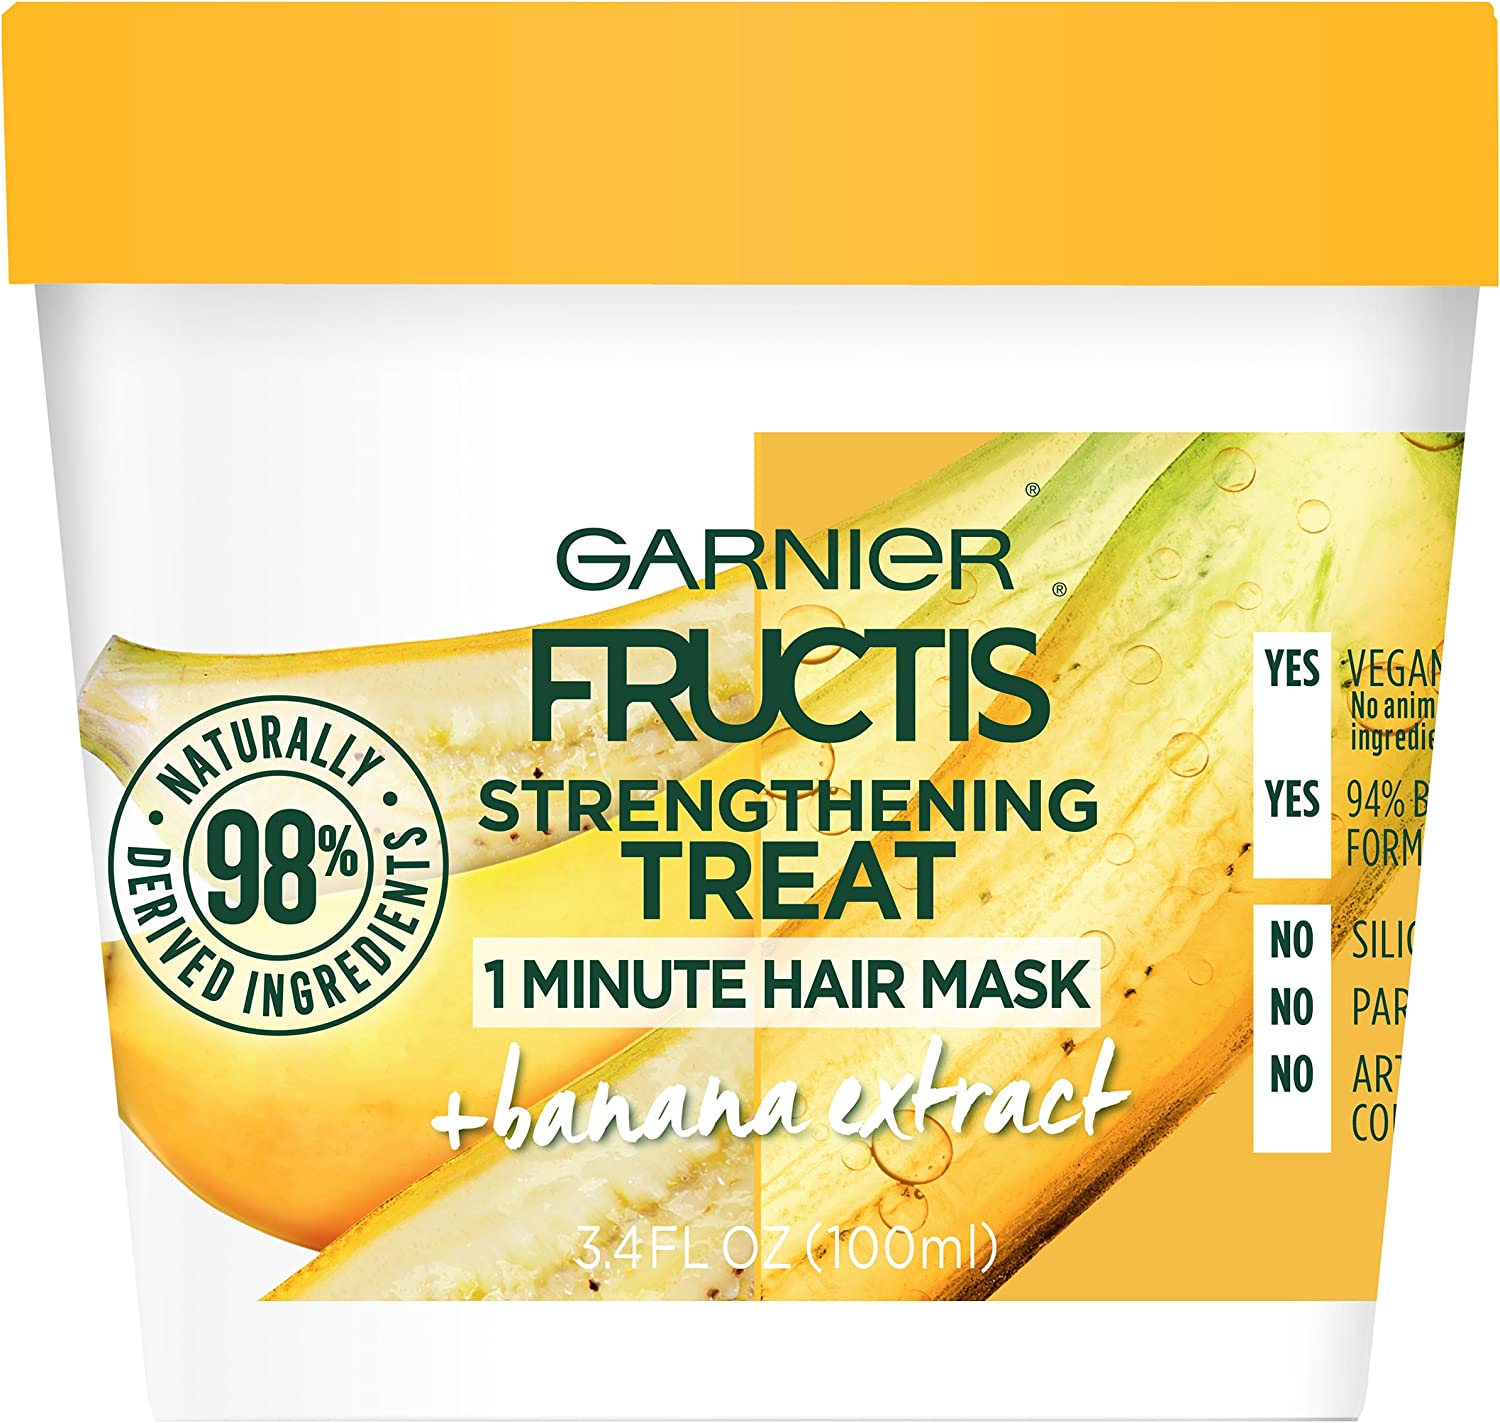 Garnier Fructis Strengthening Treat 1 Minute Hair Mask with Banana Extract, 3.4 Fl Oz (Pack of 1)